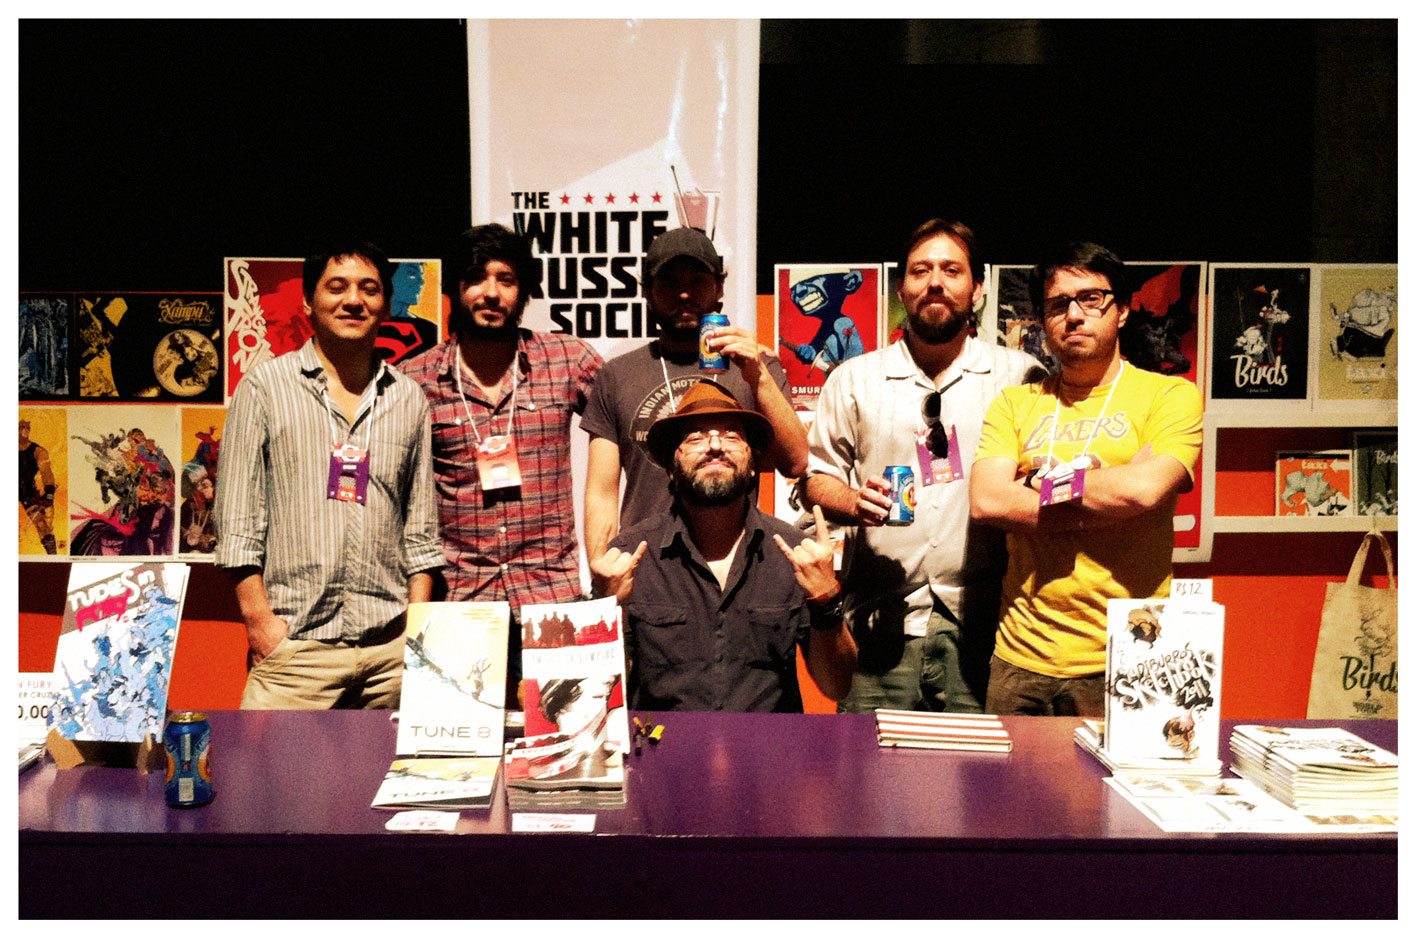 white-russian-society-riocomicon-2011